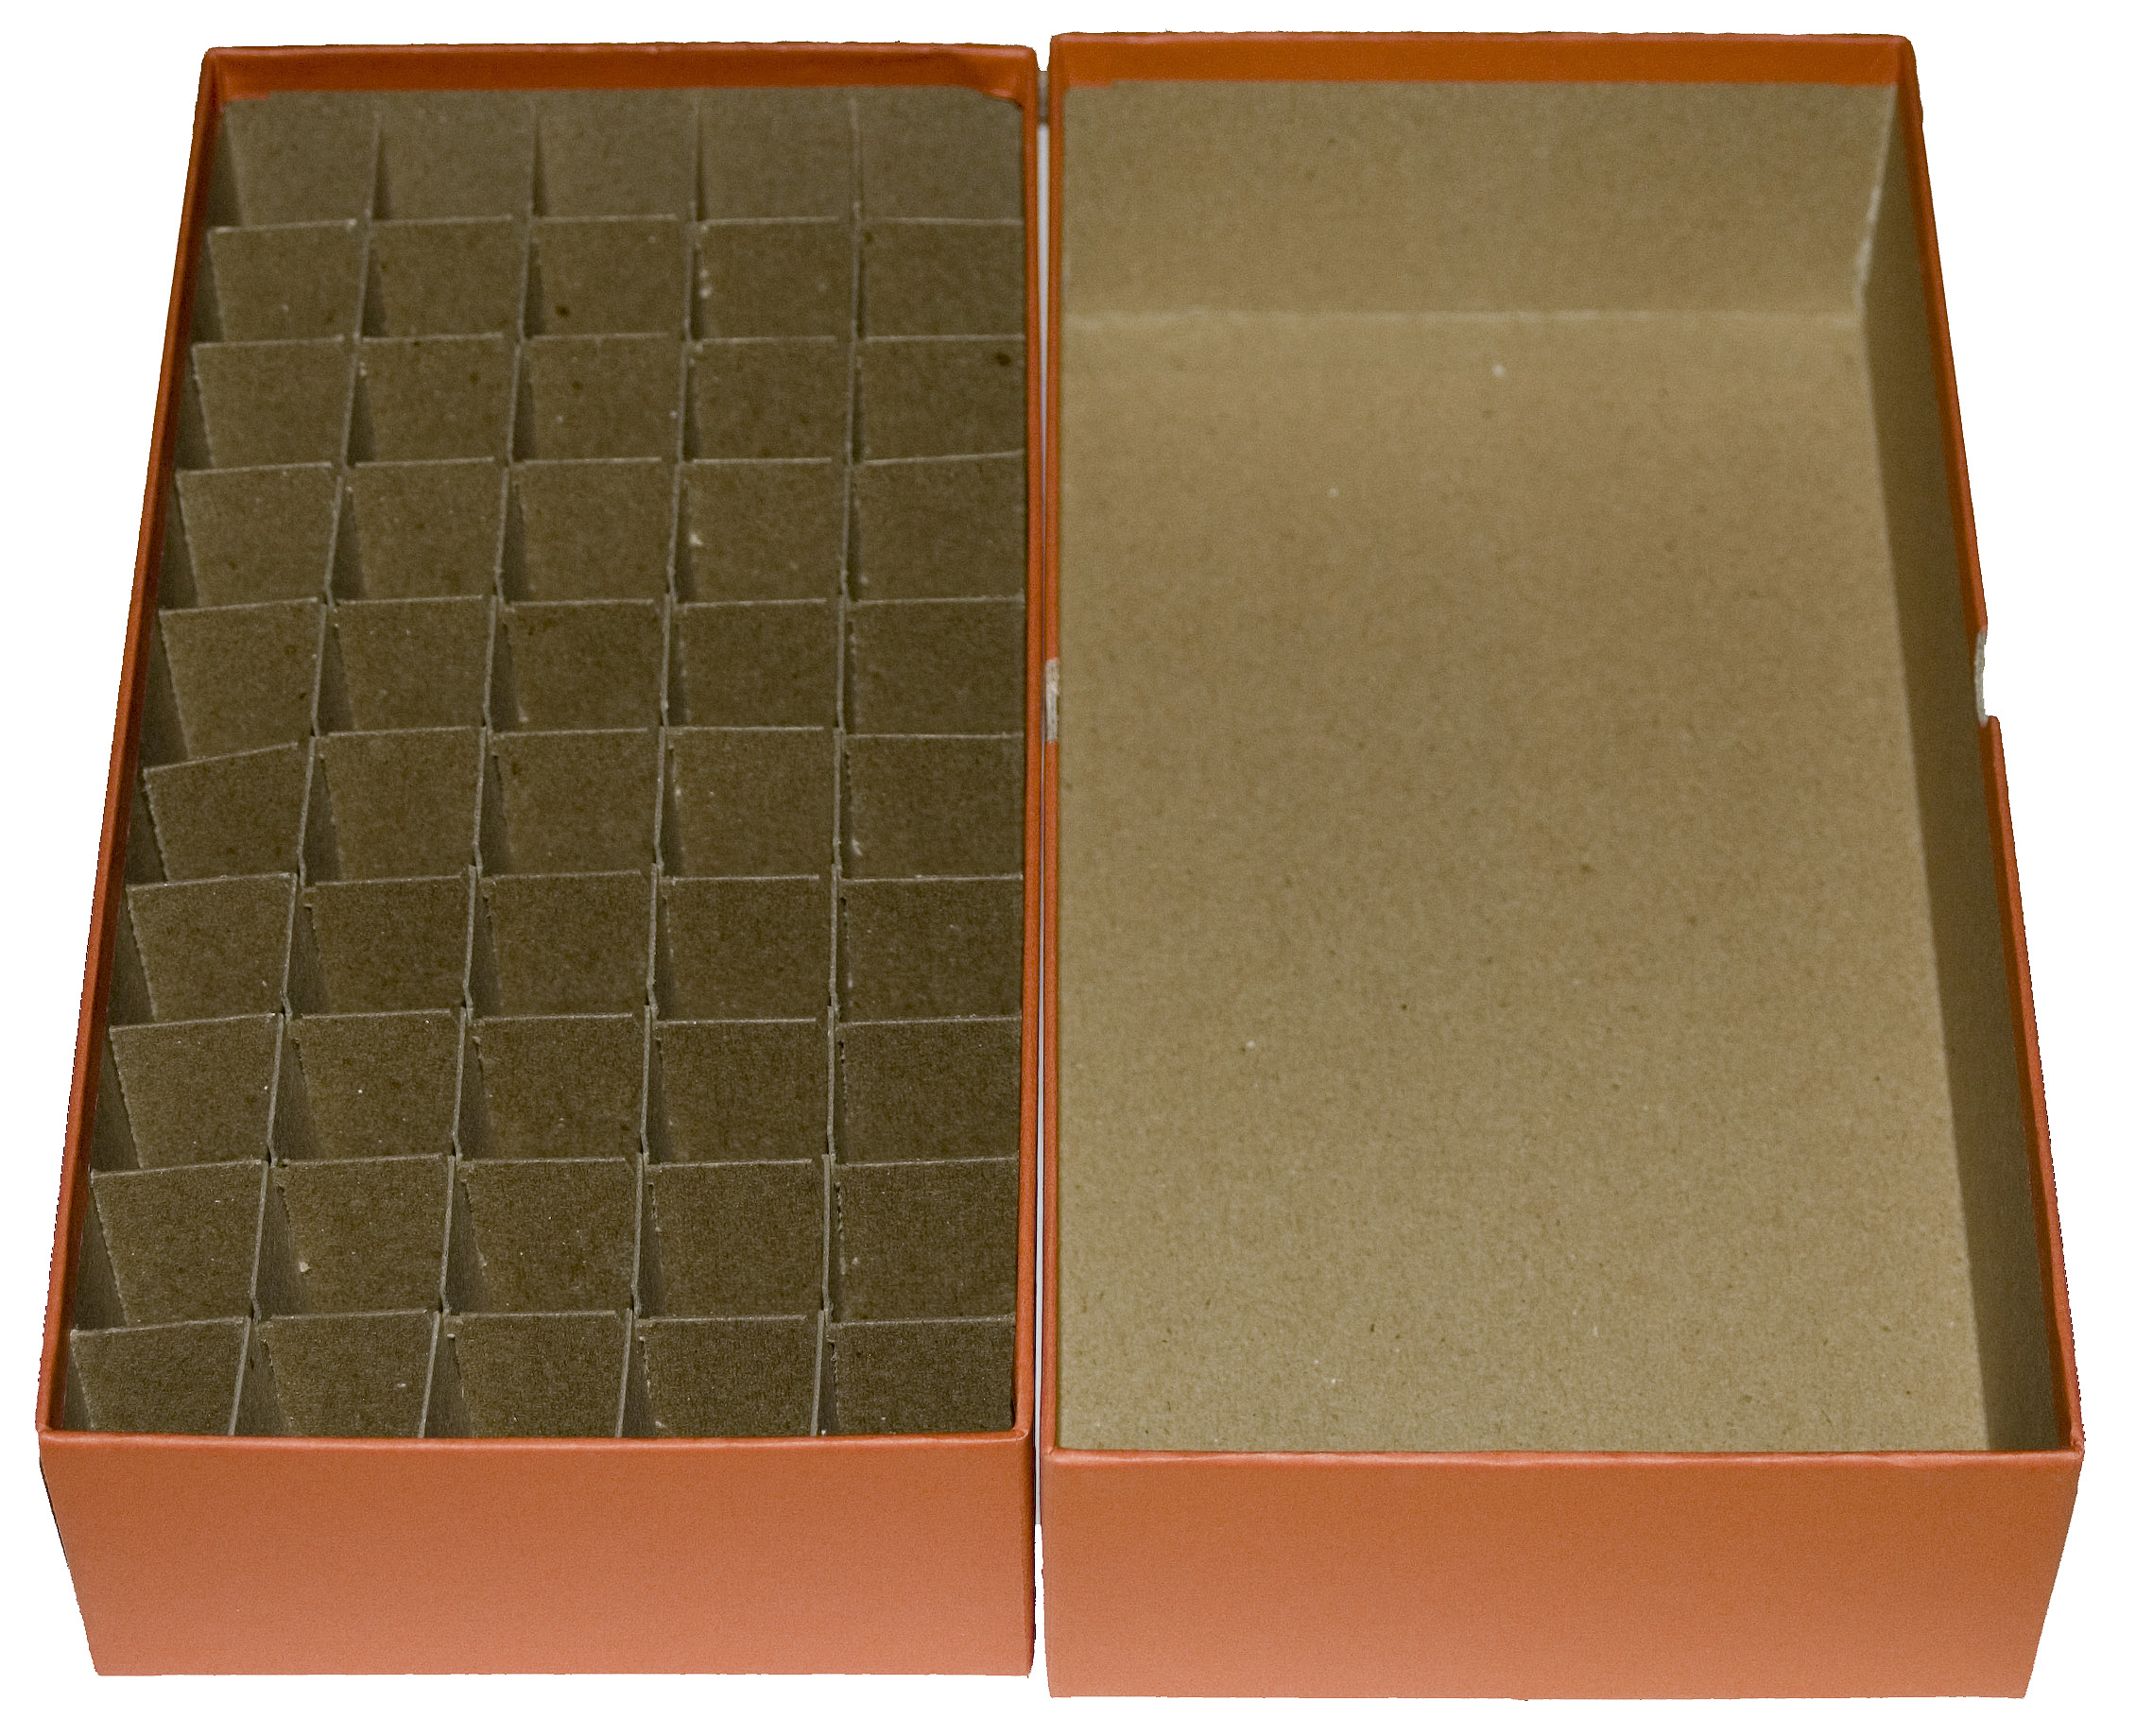 3 NEW Red Flat Cardboard Coin Storage Boxes-Fits 20 Meghrig Coin Tubes-Half $